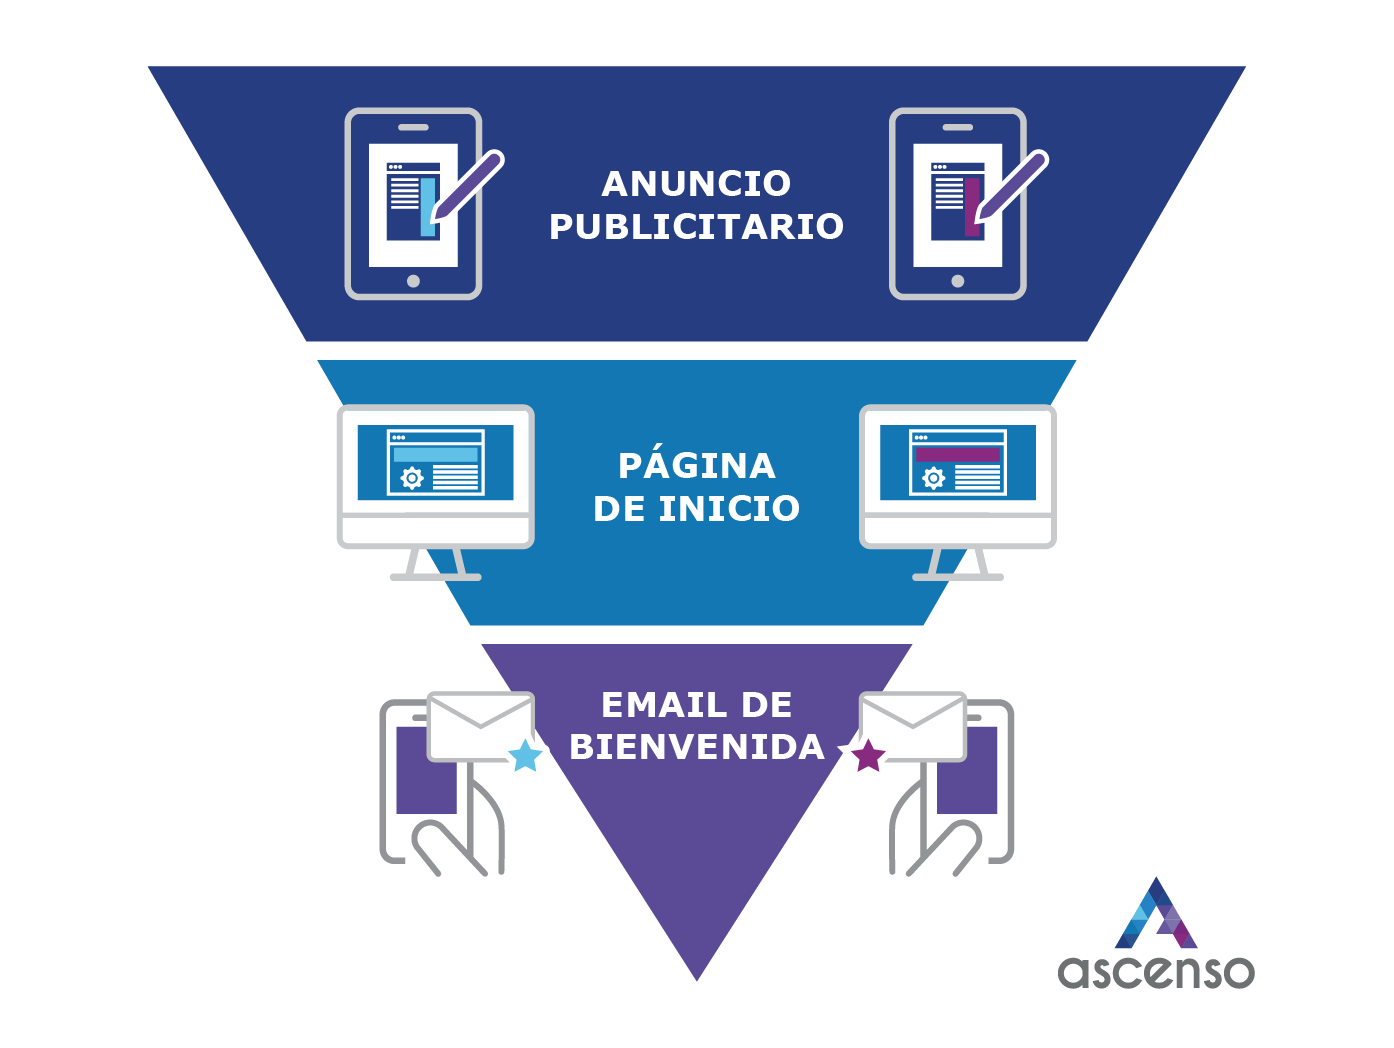 Pruebas AB - Ascenso - Marketing digital